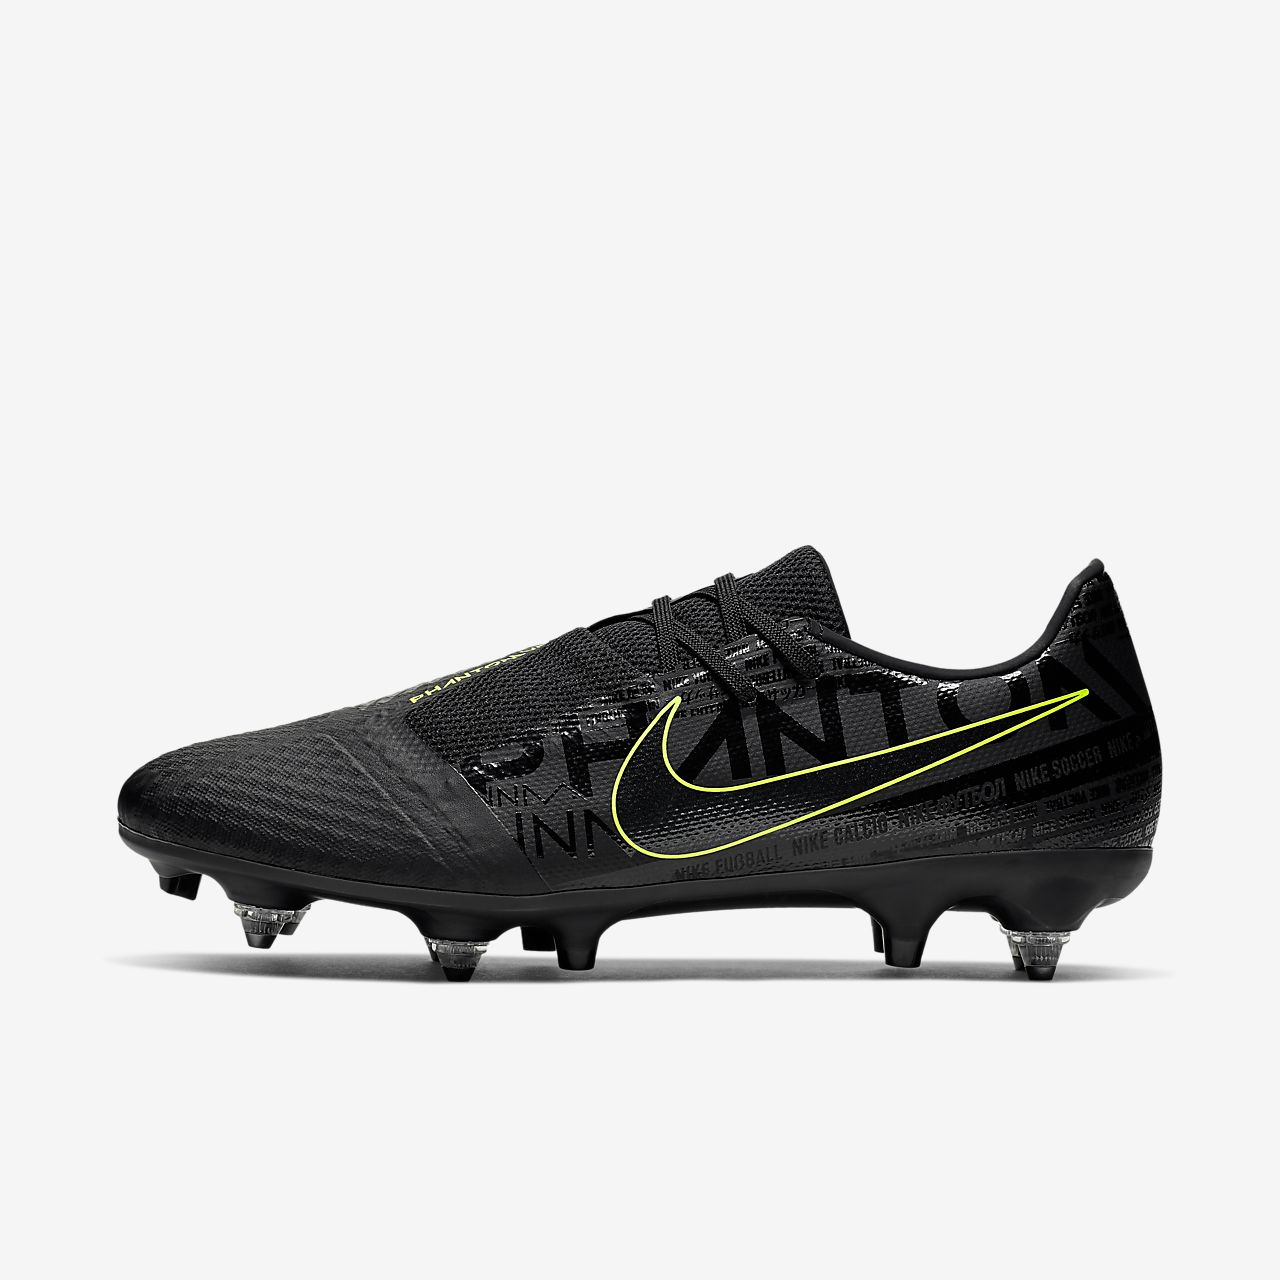 Scarpa da calcio per terreni morbidi Nike PhantomVNM Academy SG-Pro Anti-Clog Traction